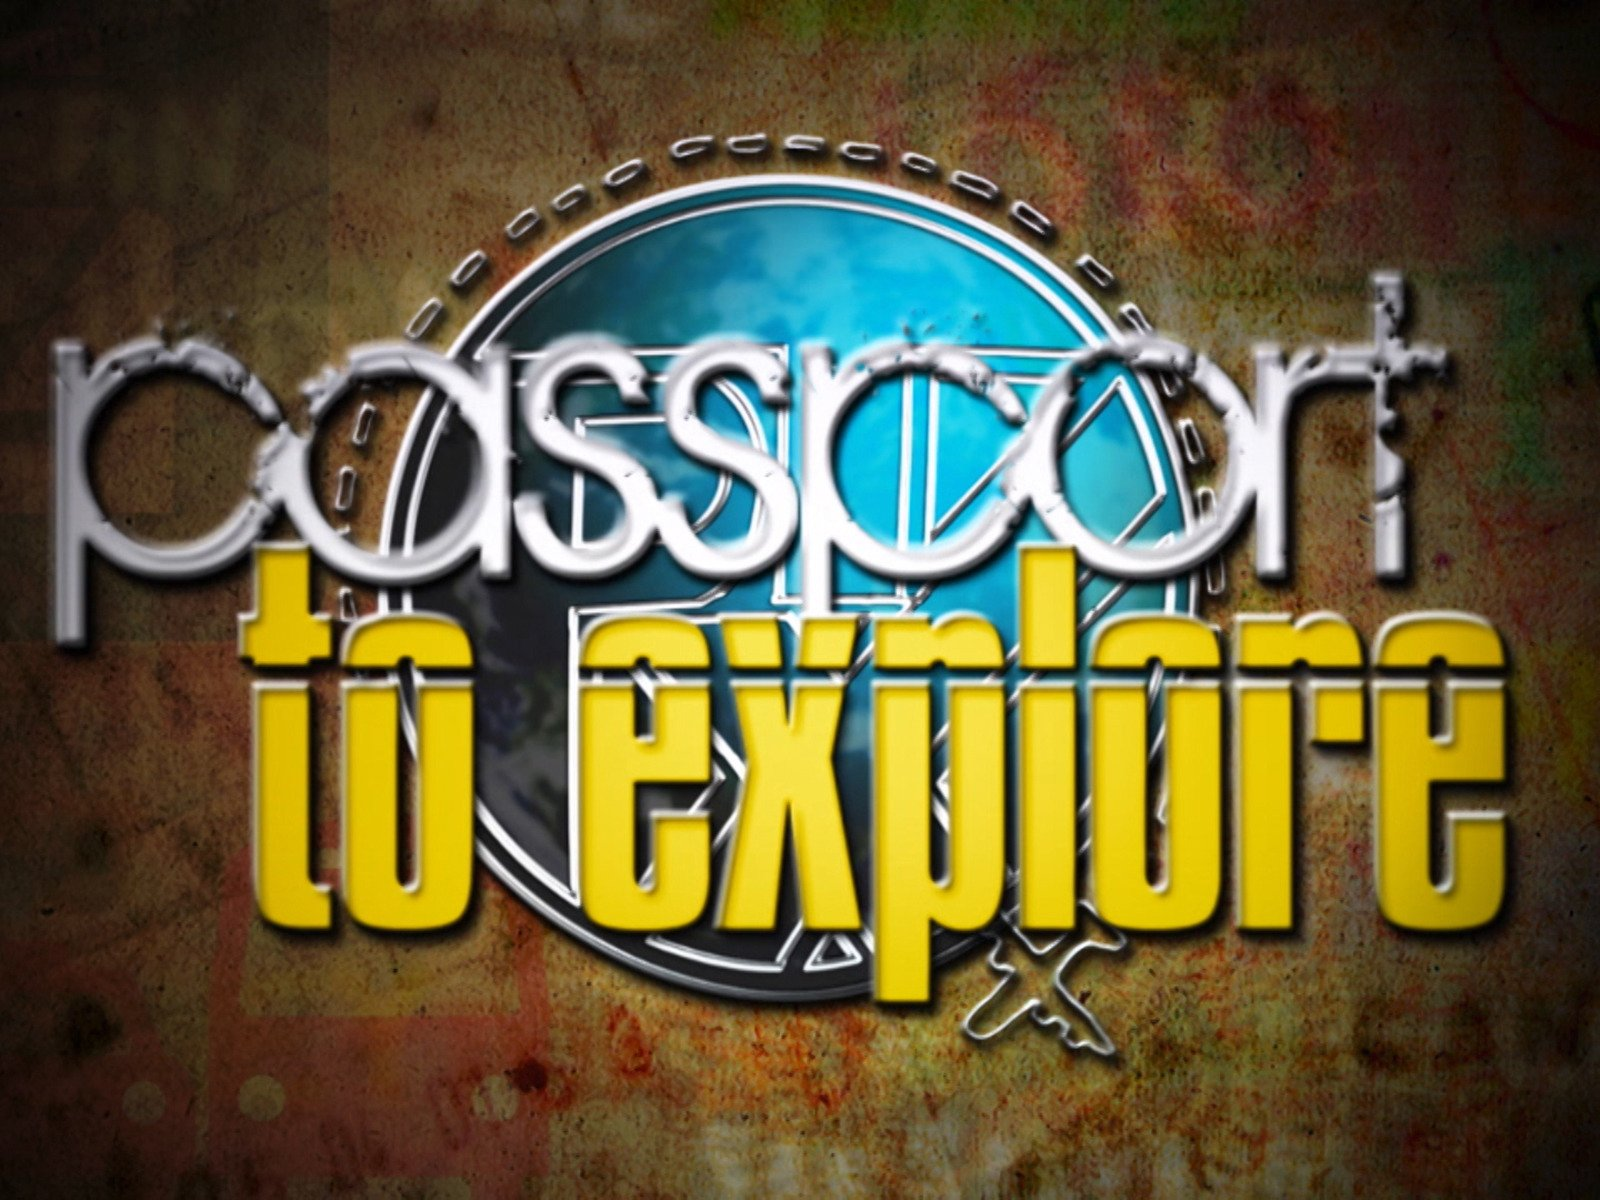 Passport to Explore - Season 1